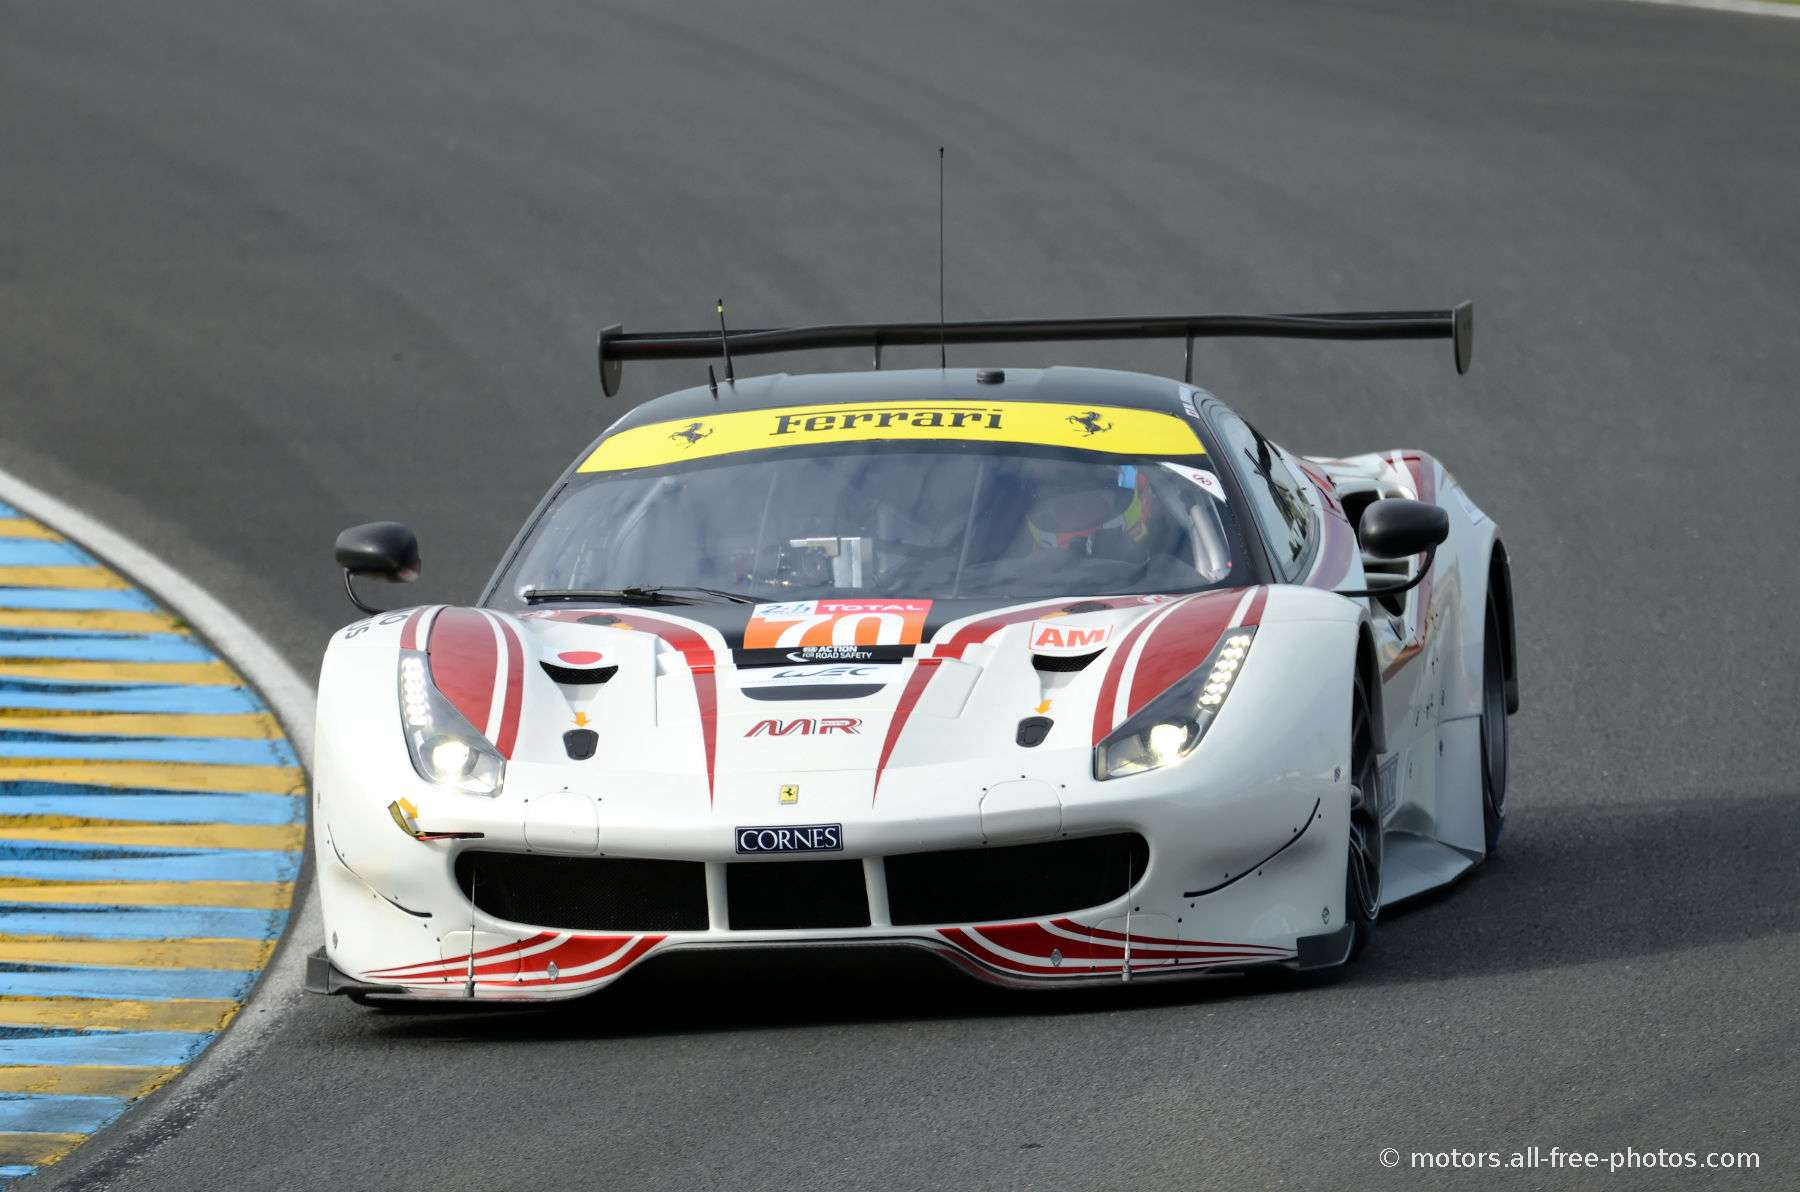 Ferrari 488 GTE - Team MR Racing